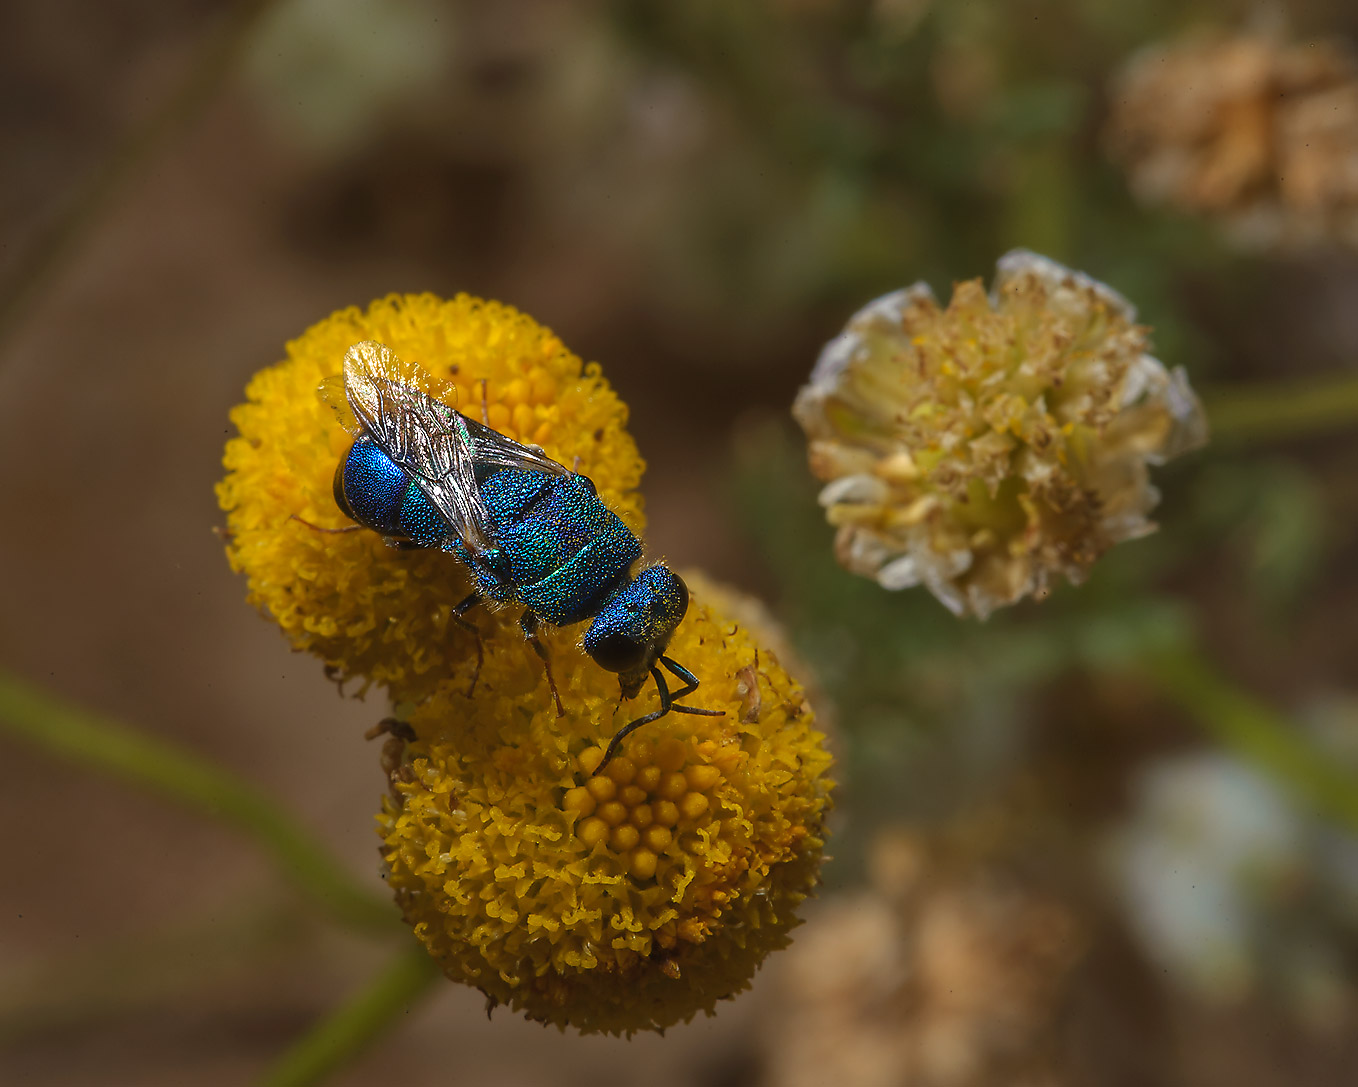 Green Metallic Bee (Agapostemon) on flowers of...of Ras Laffan farms. Northern Qatar